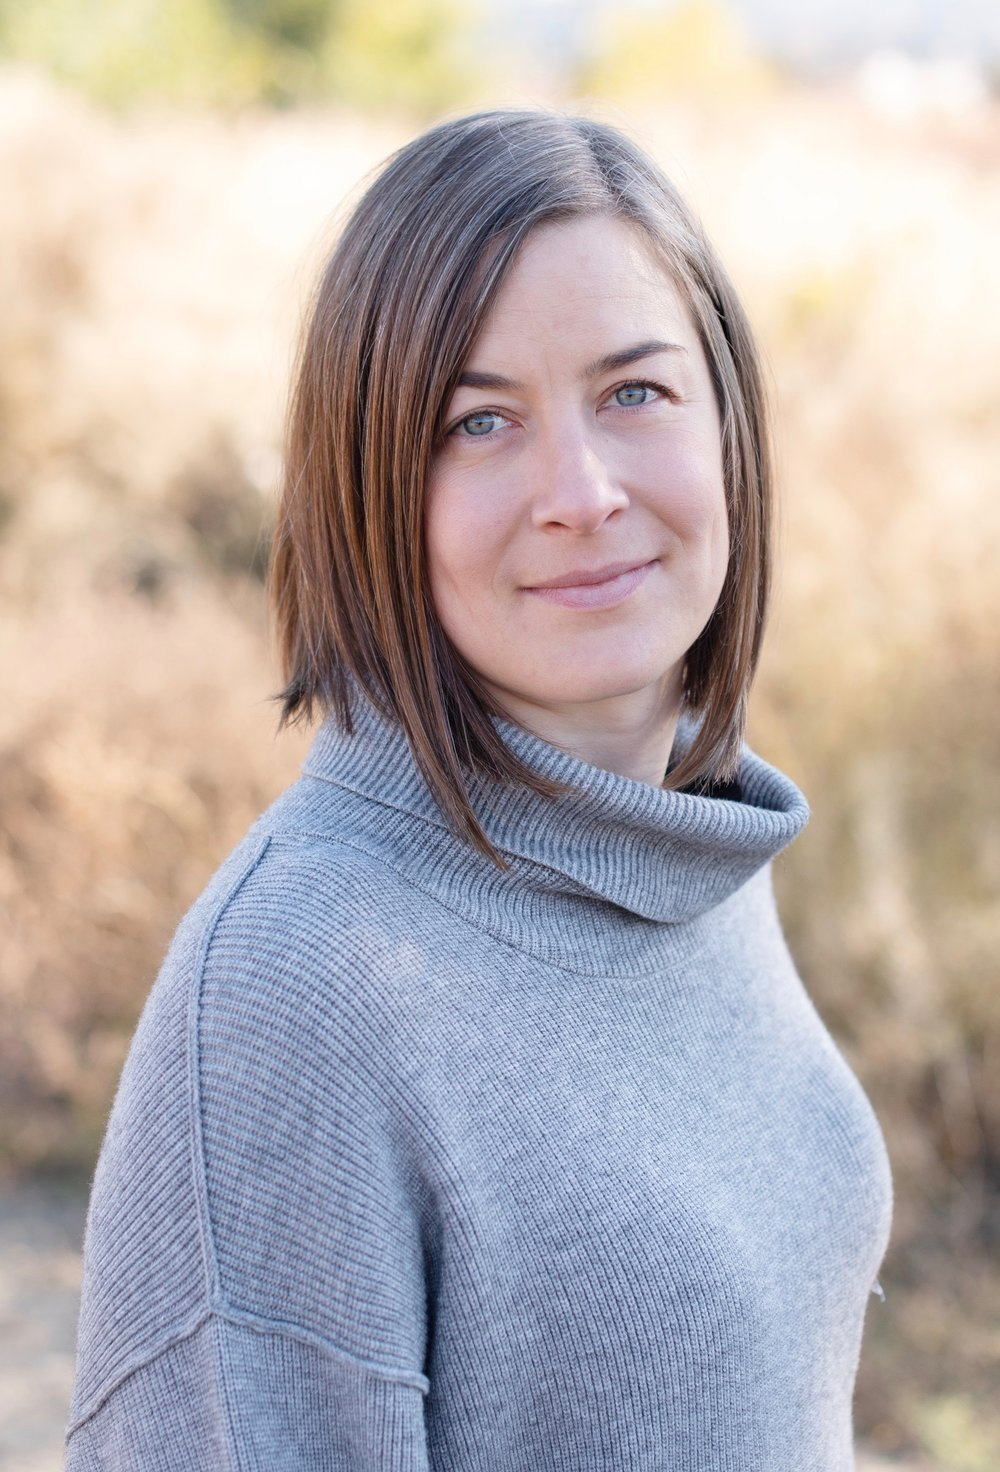 - Dr. Julie Ryckman is a graduate of the University of Ottawa (2013) and the University of Manitoba (2008), and has been practicing obstetrics and gynaecology in Penticton since 2014. She offers primary obstetrical care to women with lower risk and higher risk pregnancies, and works in consultation with the South Okanagan Maternity Centre and the Willow Midwives to provide comprehensive care to pregnant women. She also is the only provider of colposcopy services to patients in the region who have had an abnormal pap test.